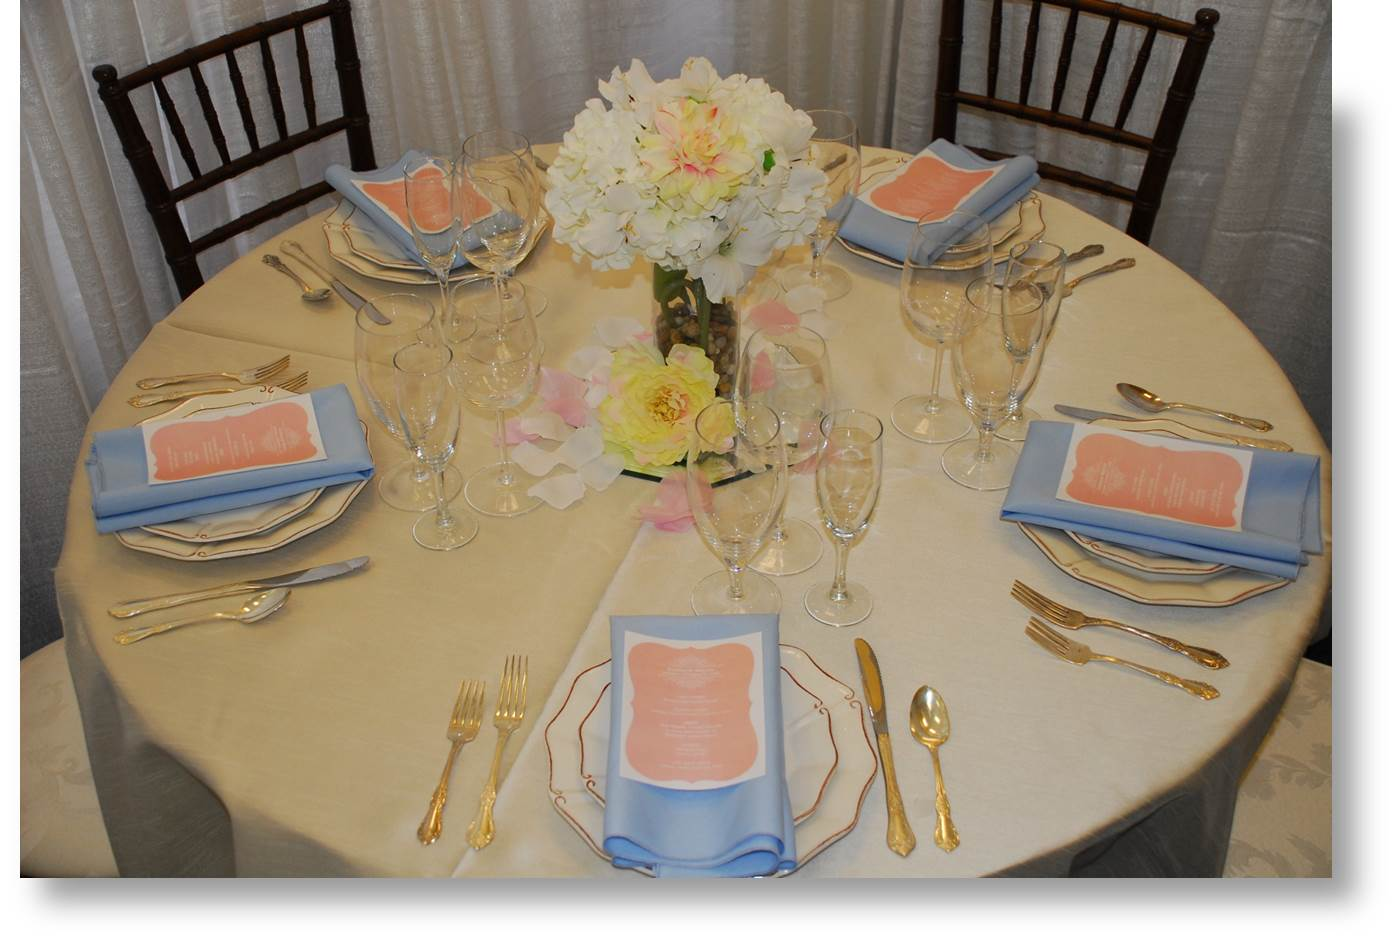 Tennessee rutherford county lascassas - 7 Farm Table Champagne Table Dsc01806_0160_160